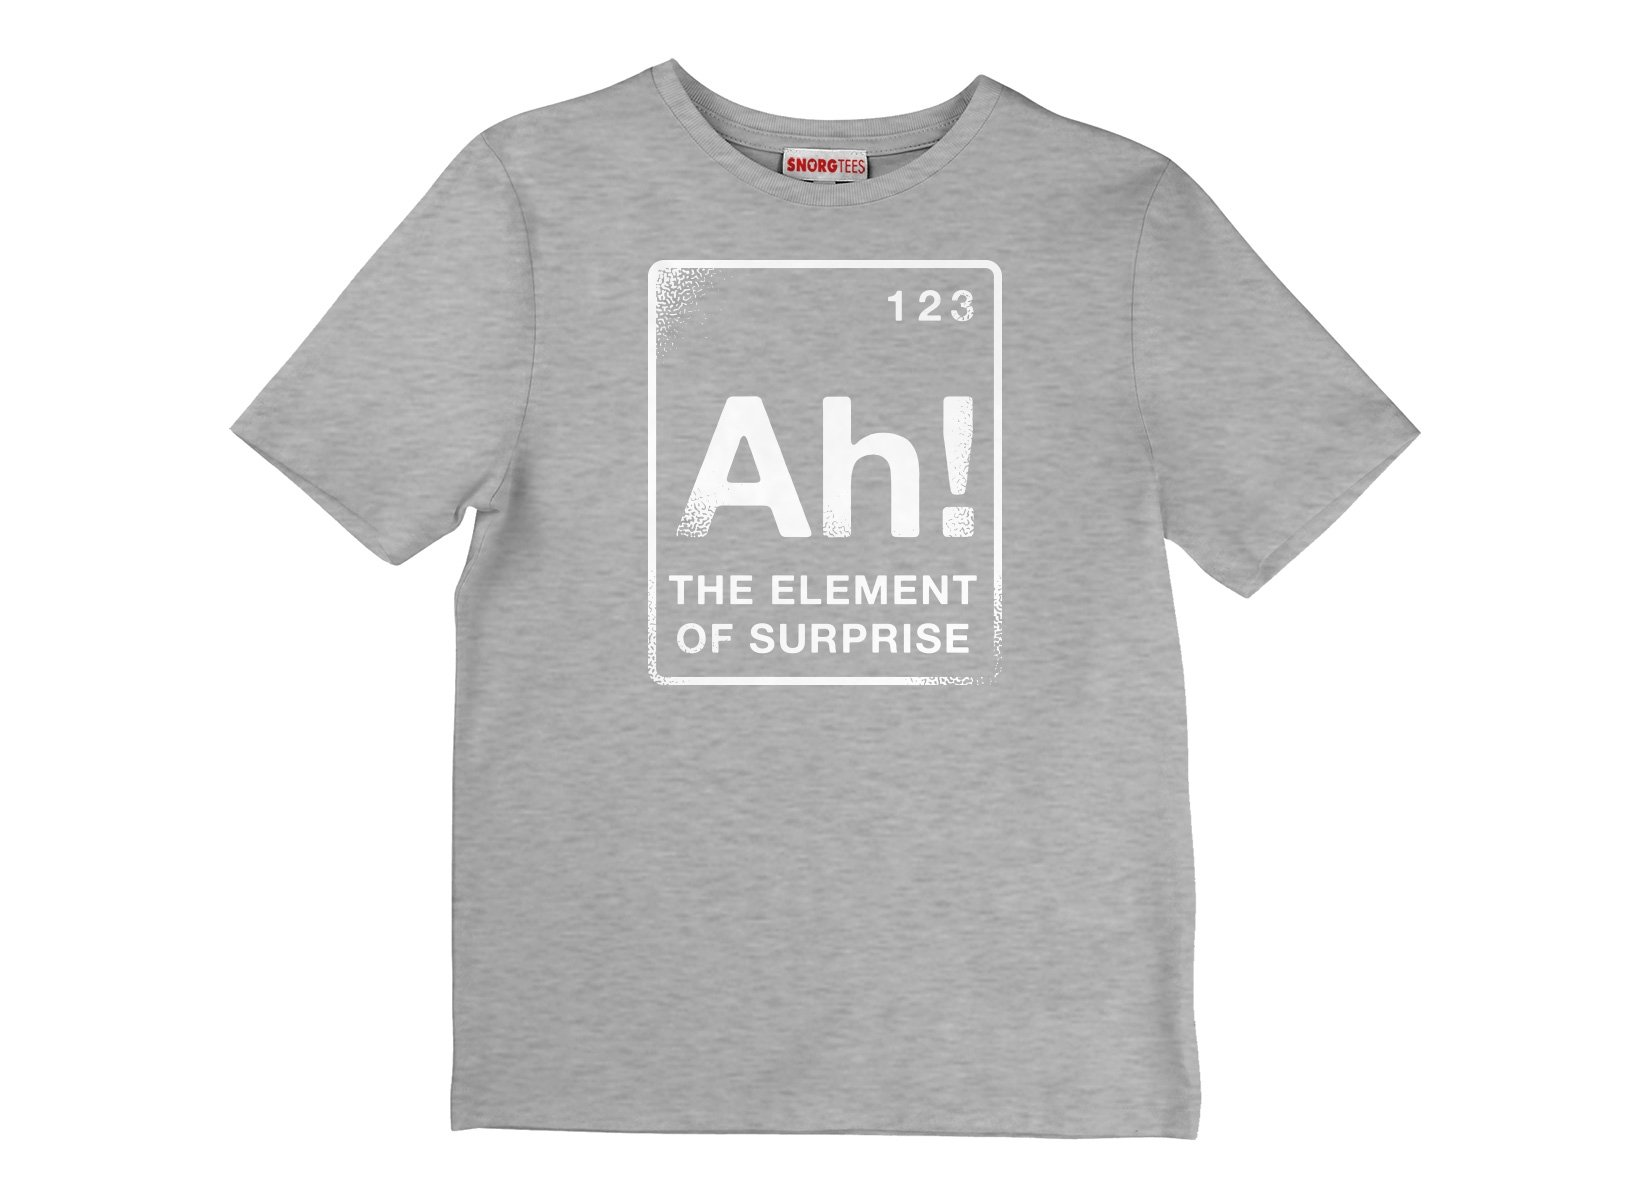 The Element Of Surprise on Kids T-Shirt